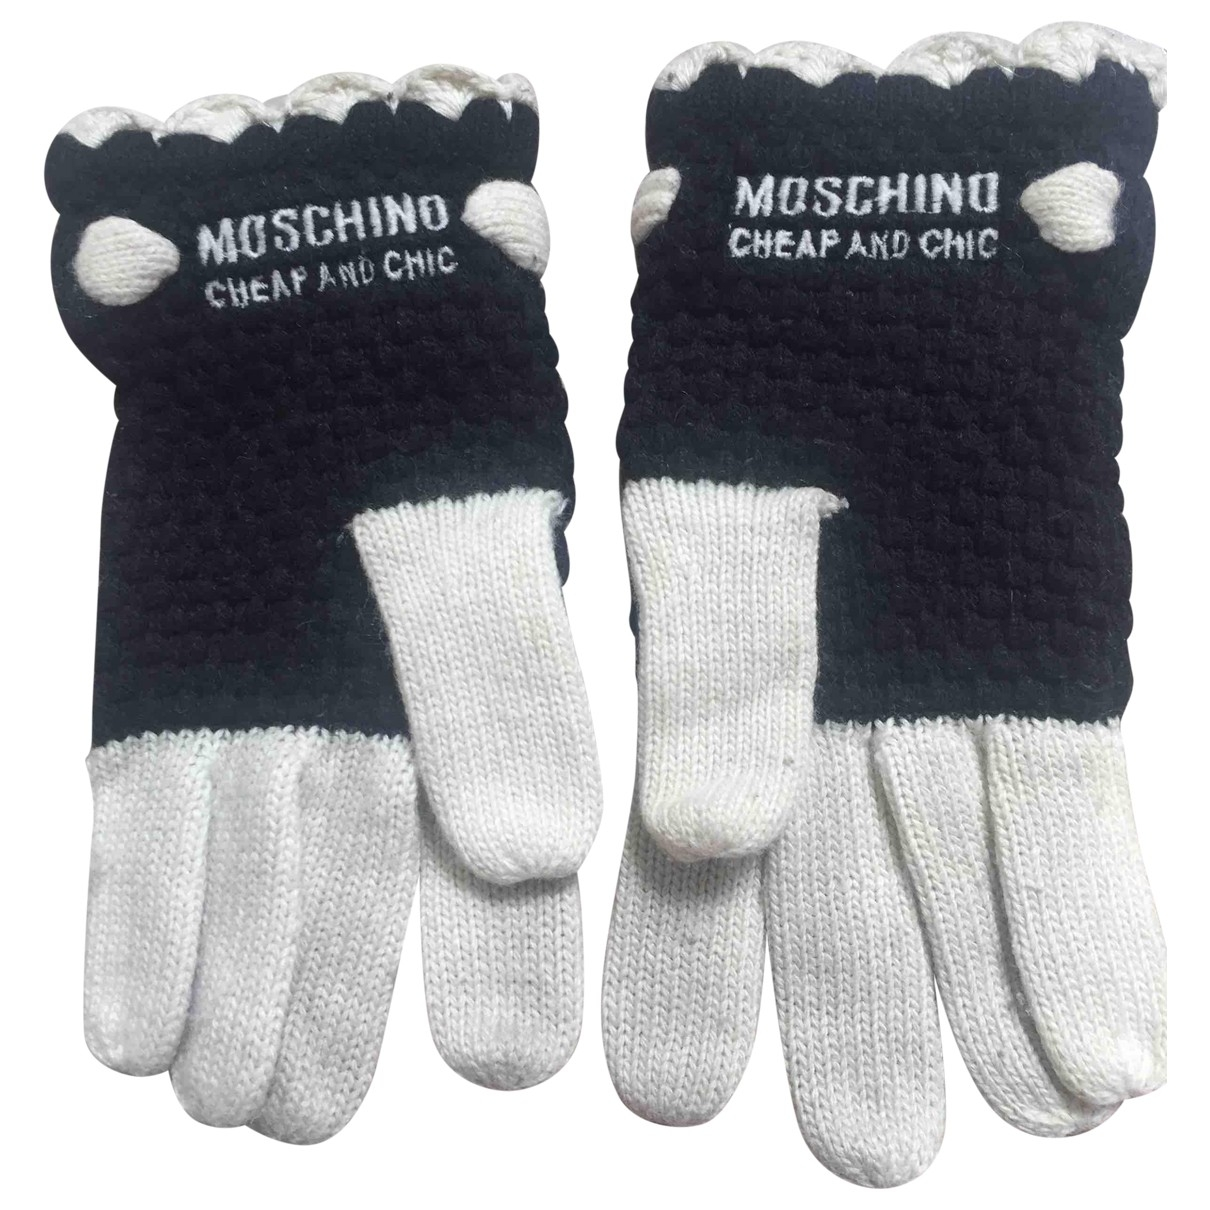 Moschino Cheap And Chic \N Black Wool Gloves for Women S International